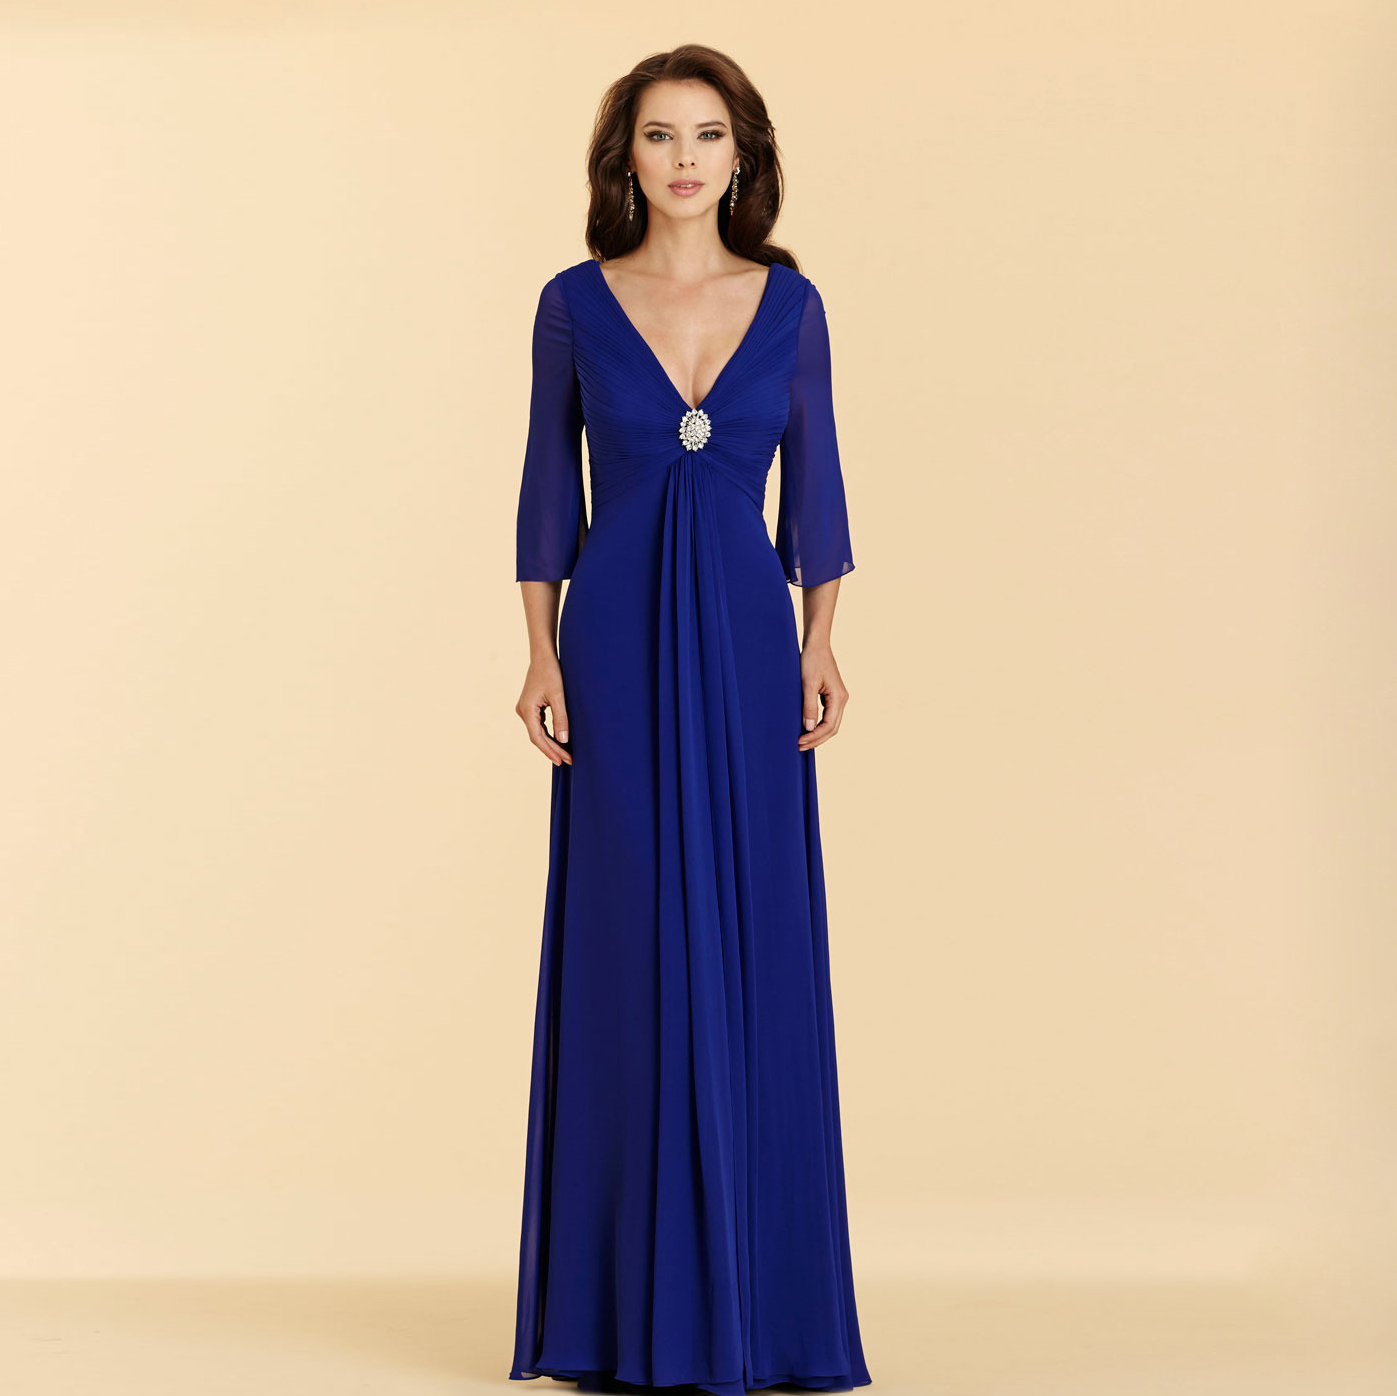 Z 2016 new arrival stock maternity plus size bridal gown evening z 2016 new arrival stock maternity plus size bridal gown evening dress long sleeve blue simple deep v neck sexy 090 in evening dresses from weddings ombrellifo Images